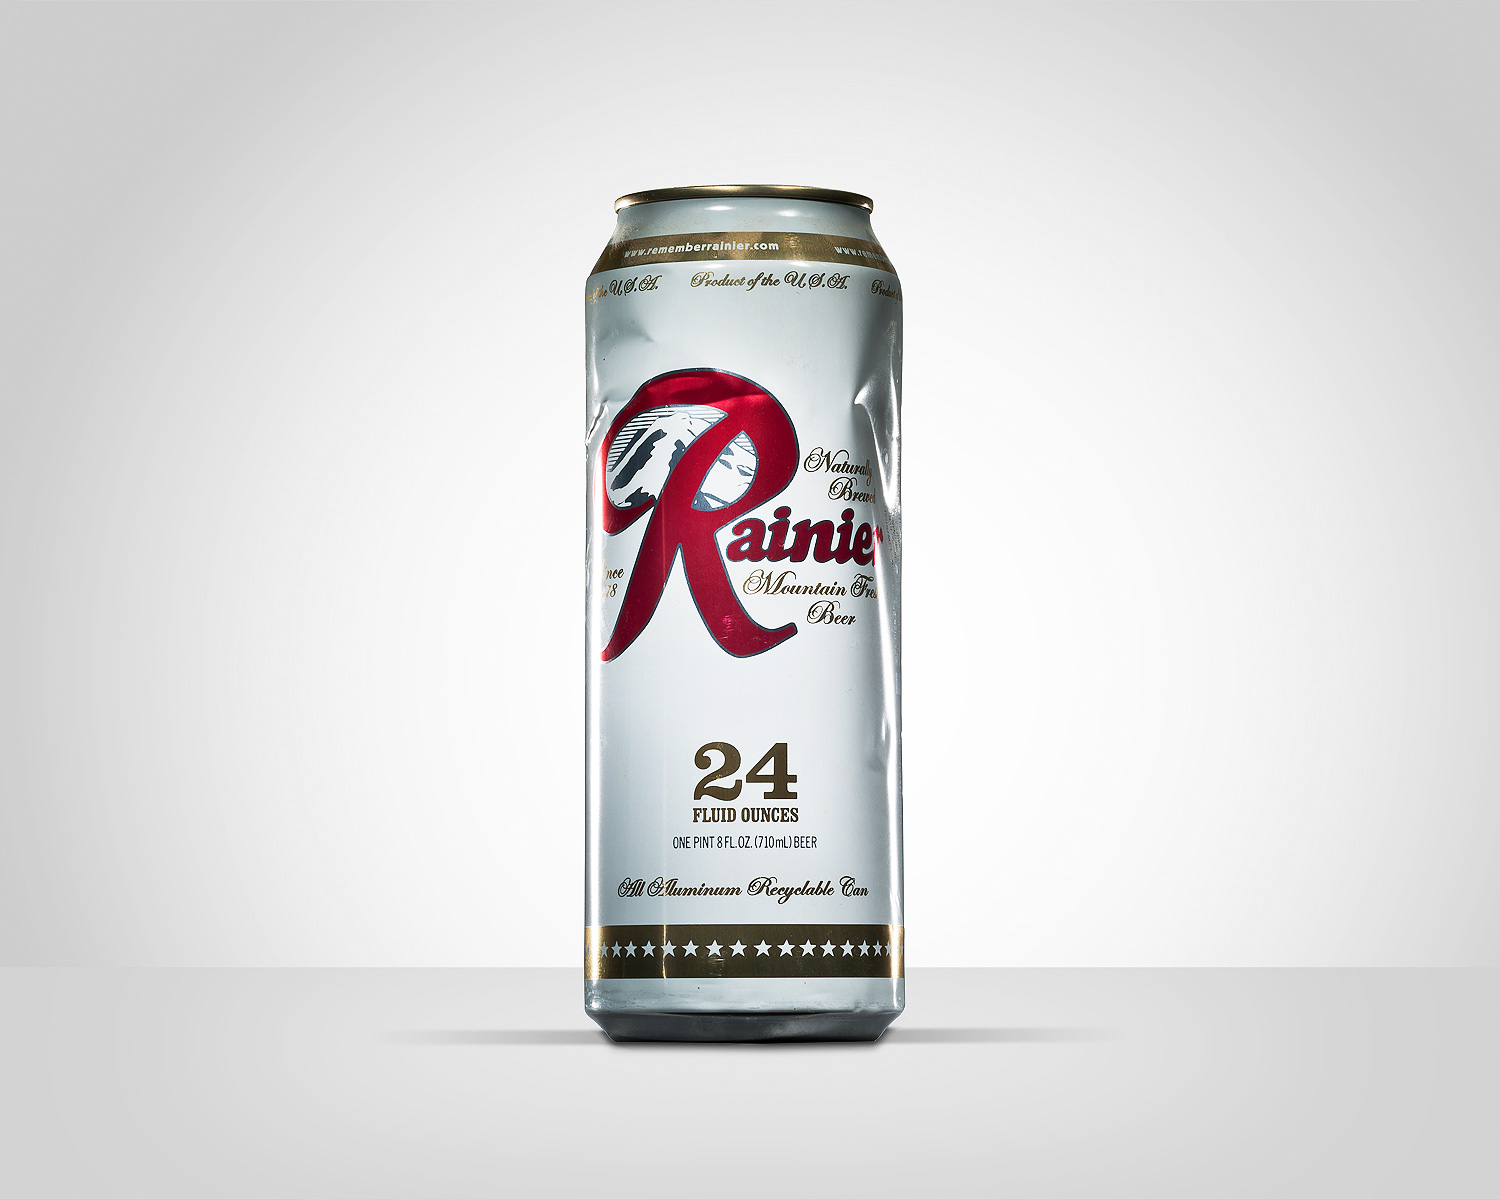 Rainier Beer 24oz